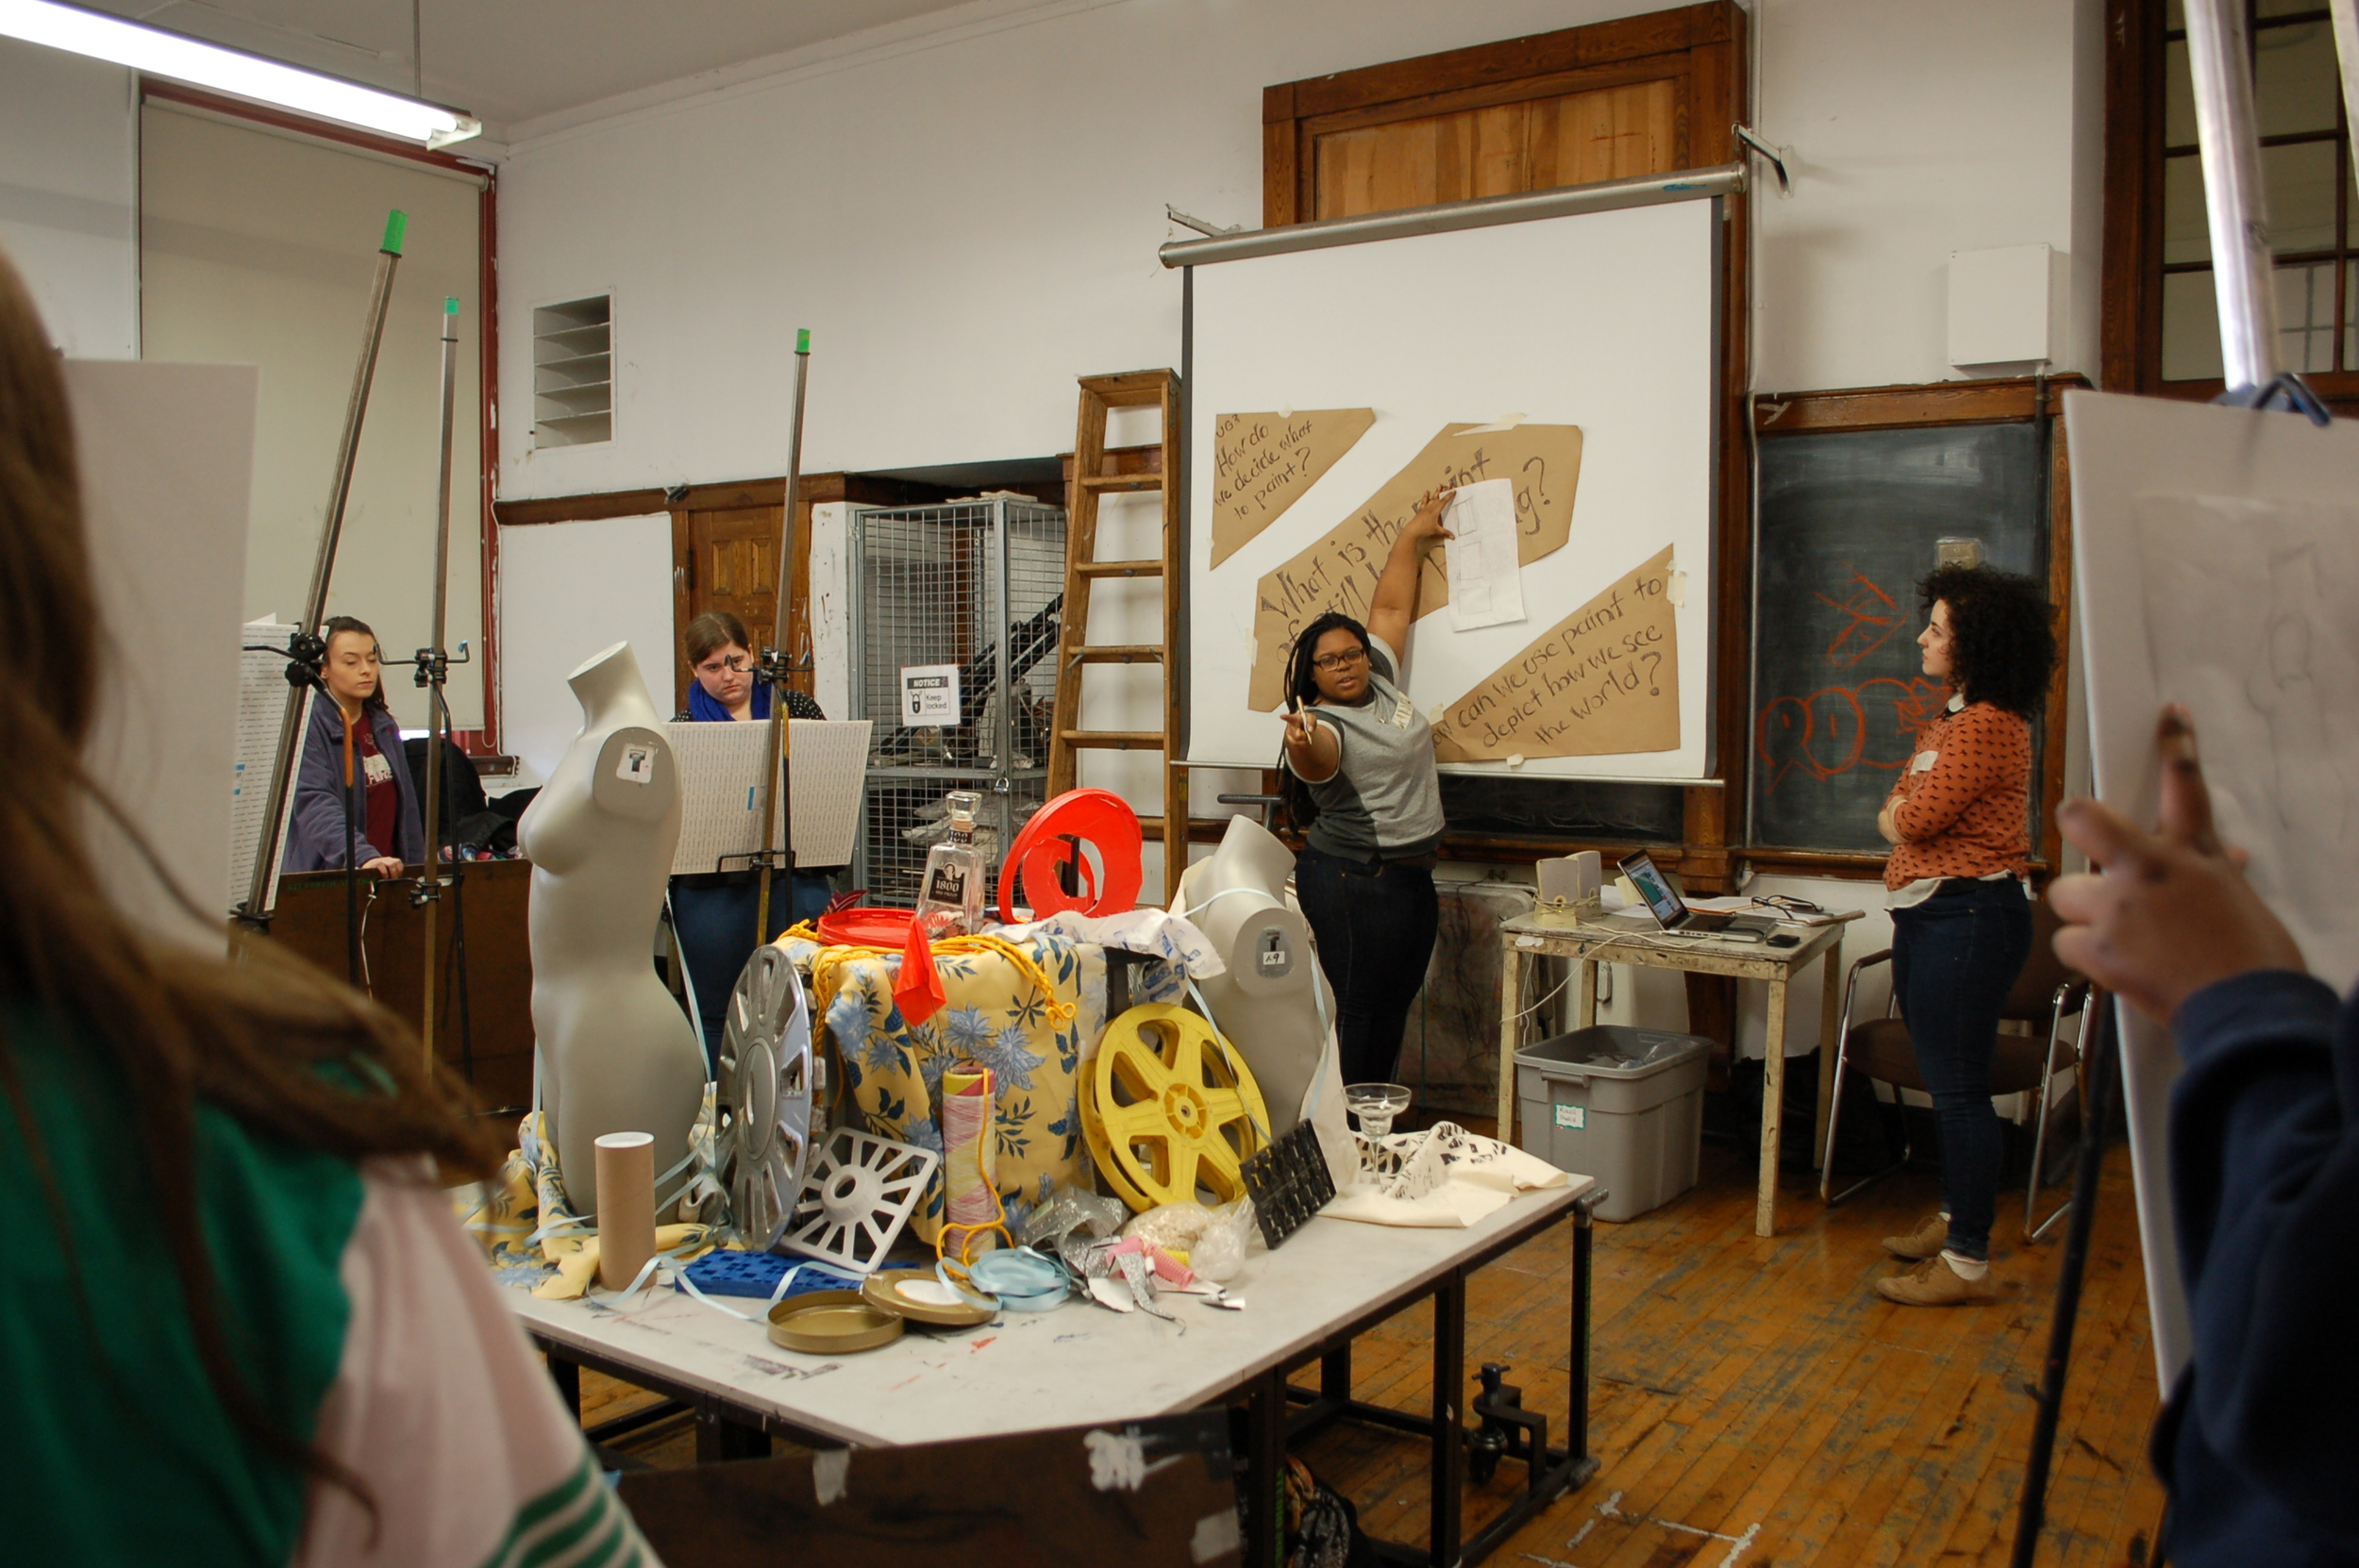 Here I am giving some info to my students on how to select parts of the still life for enlargement during the Saturday Studios High School Painting Course.